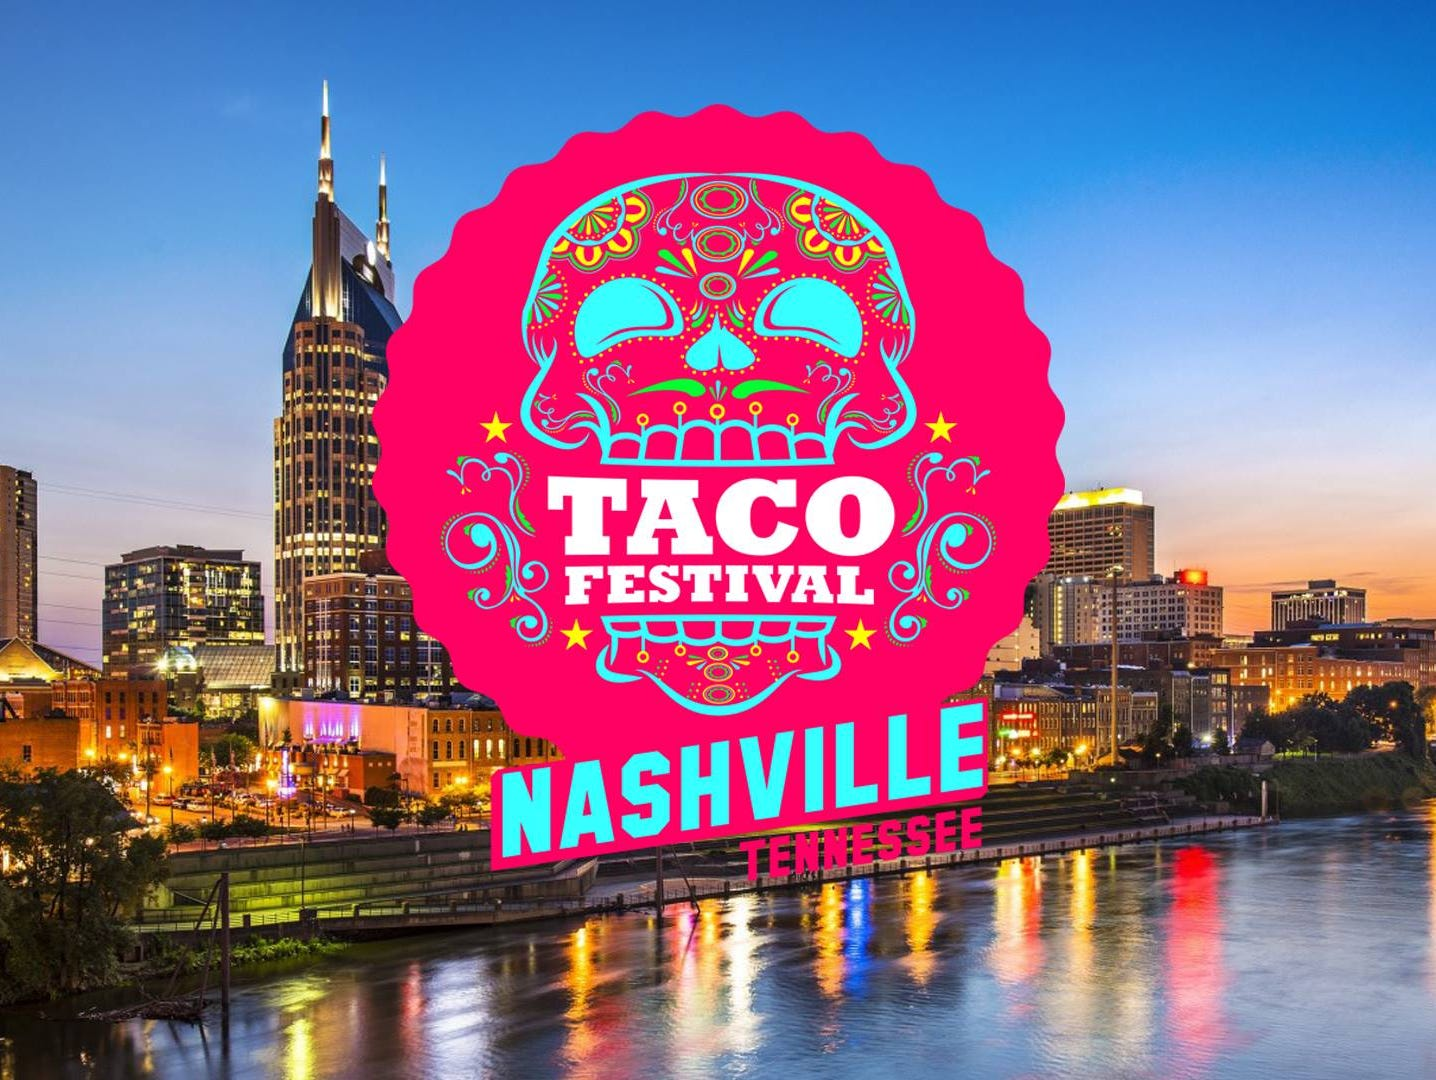 We're celebrating Taco Festival on Sept. 30th with weekly giveaways on Taco Tuesday.